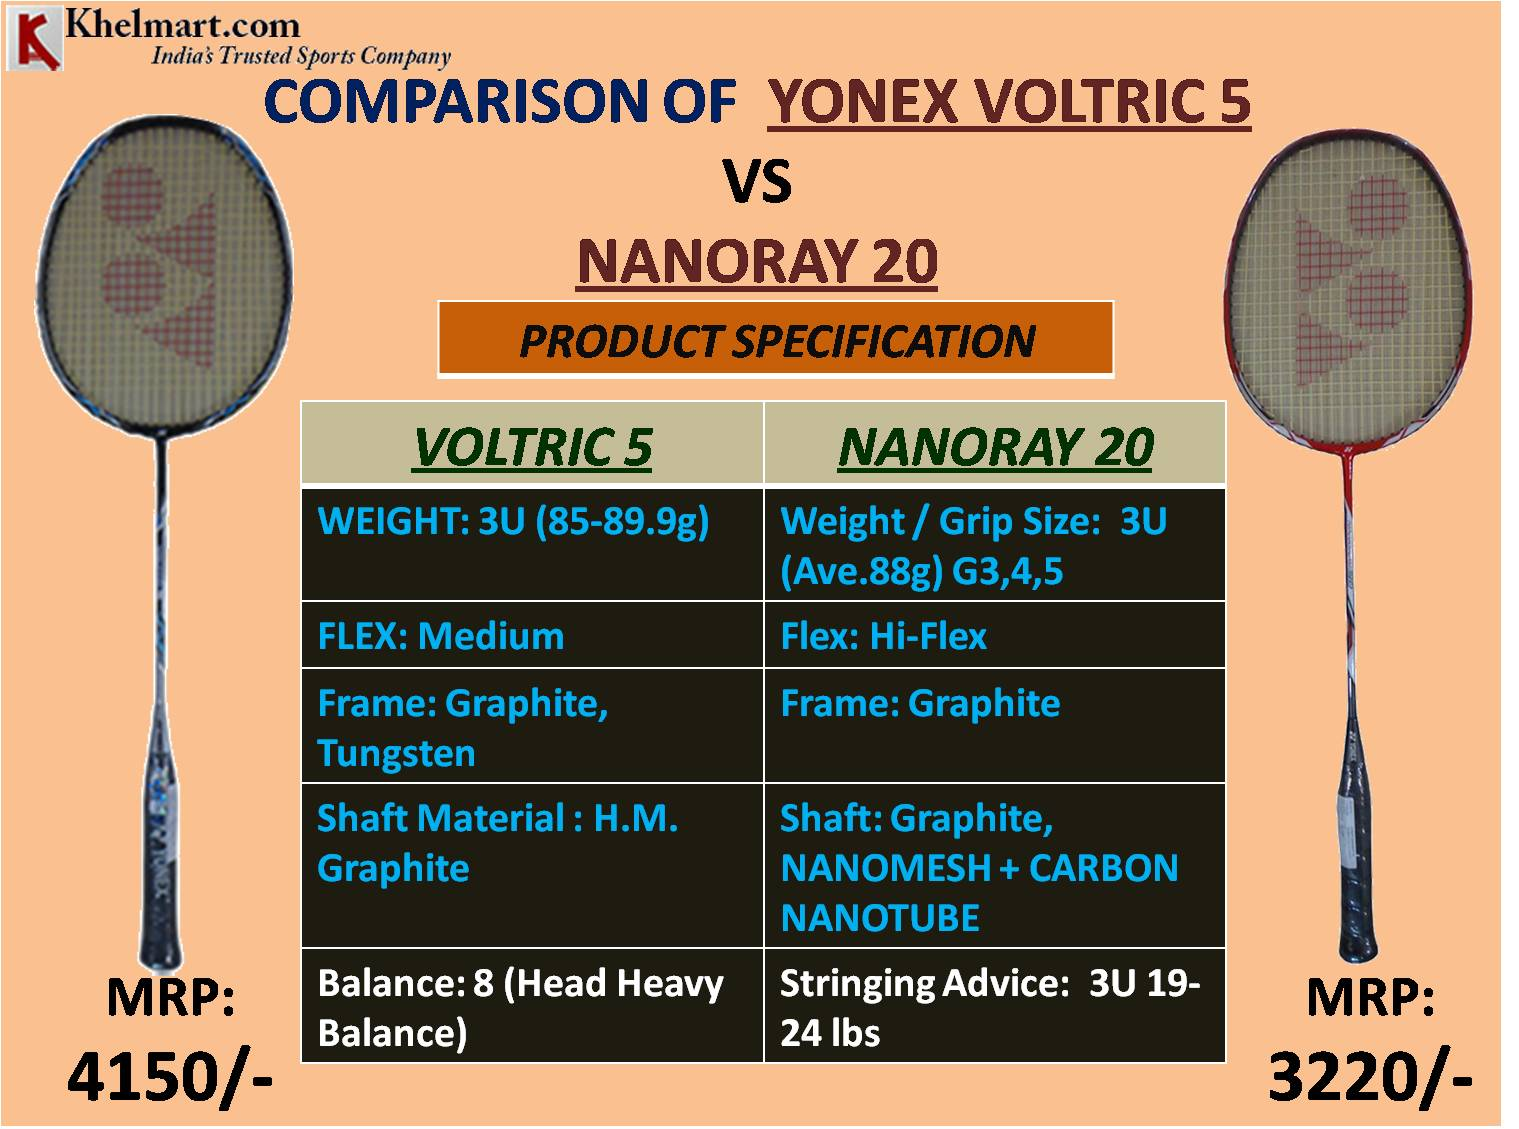 COMPARISON OF YONEX VOLTRIC 5 VS NANORAY 20_3